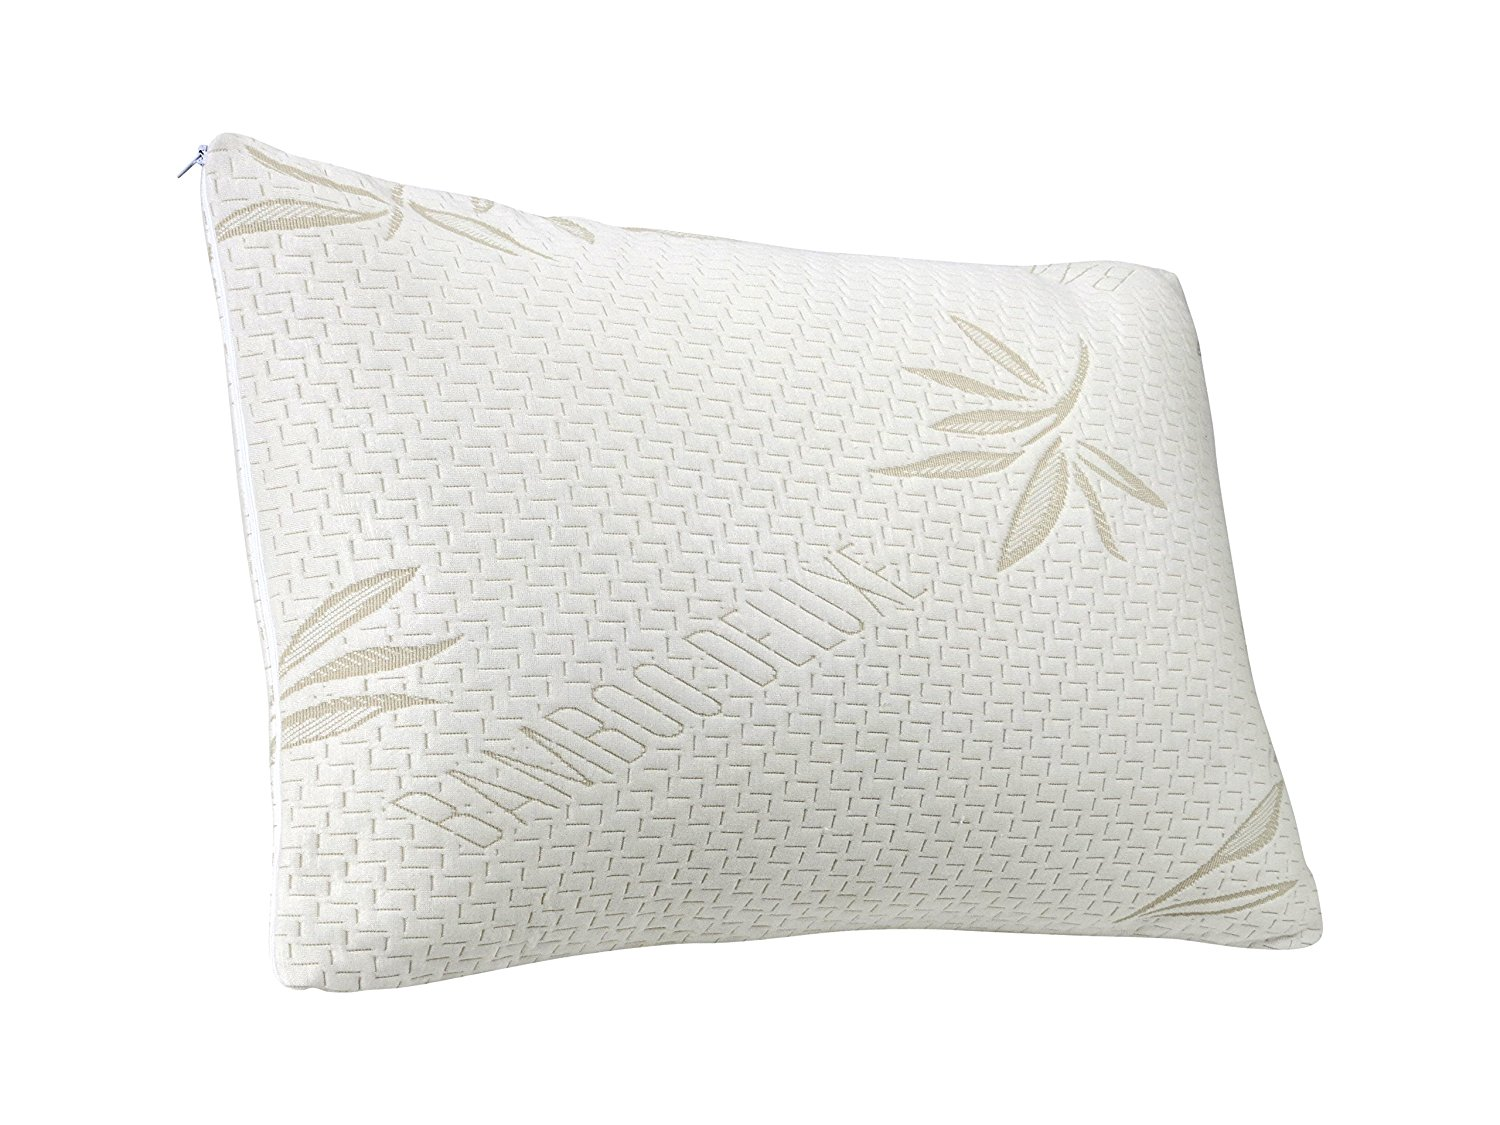 Plixio Queen Deluxe Bamboo Pillow w/ Cooling Shredded Memory Foam Hypoallergenic